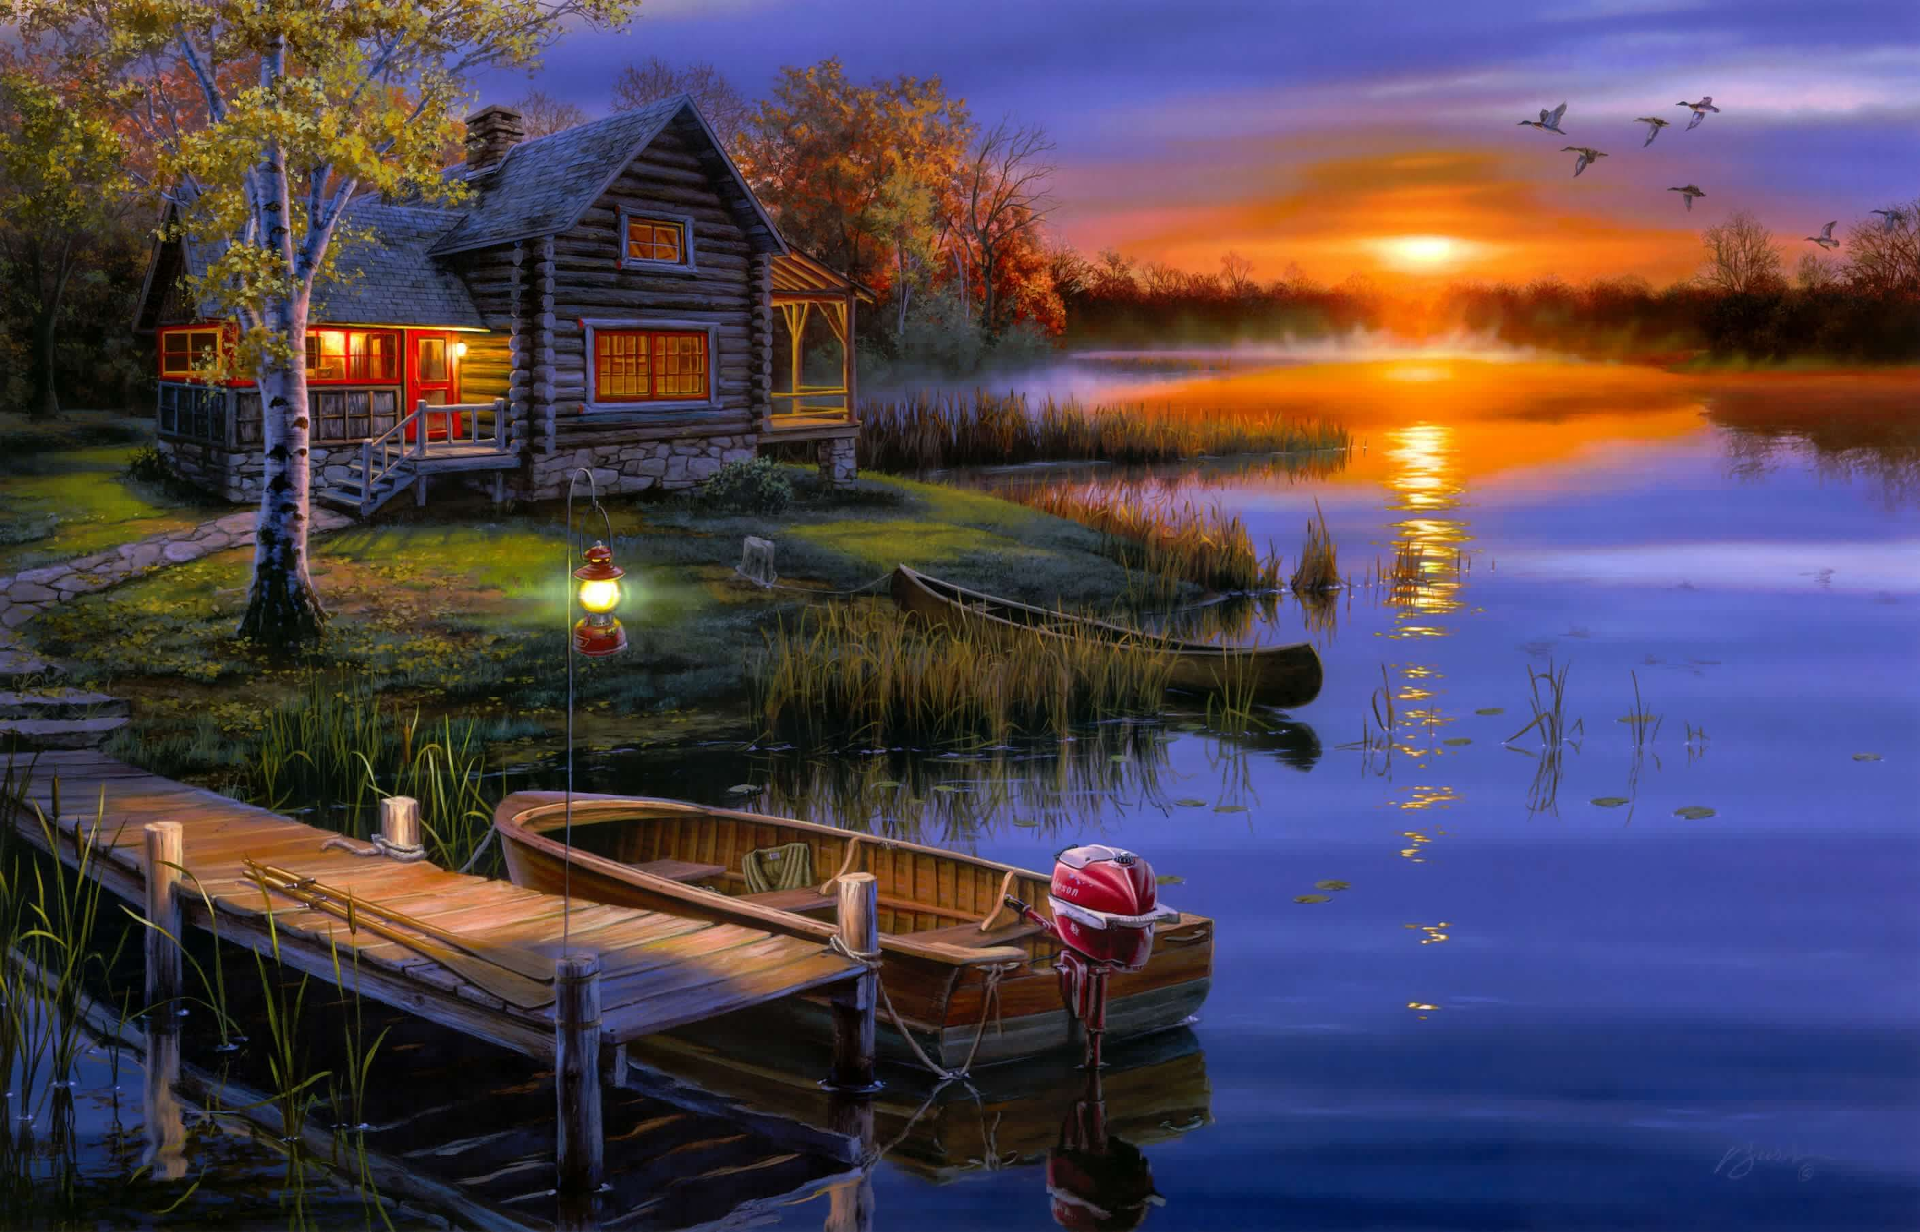 Haus am see wallpaper  Boat by the Lake House Full HD Wallpaper and Hintergrund ...